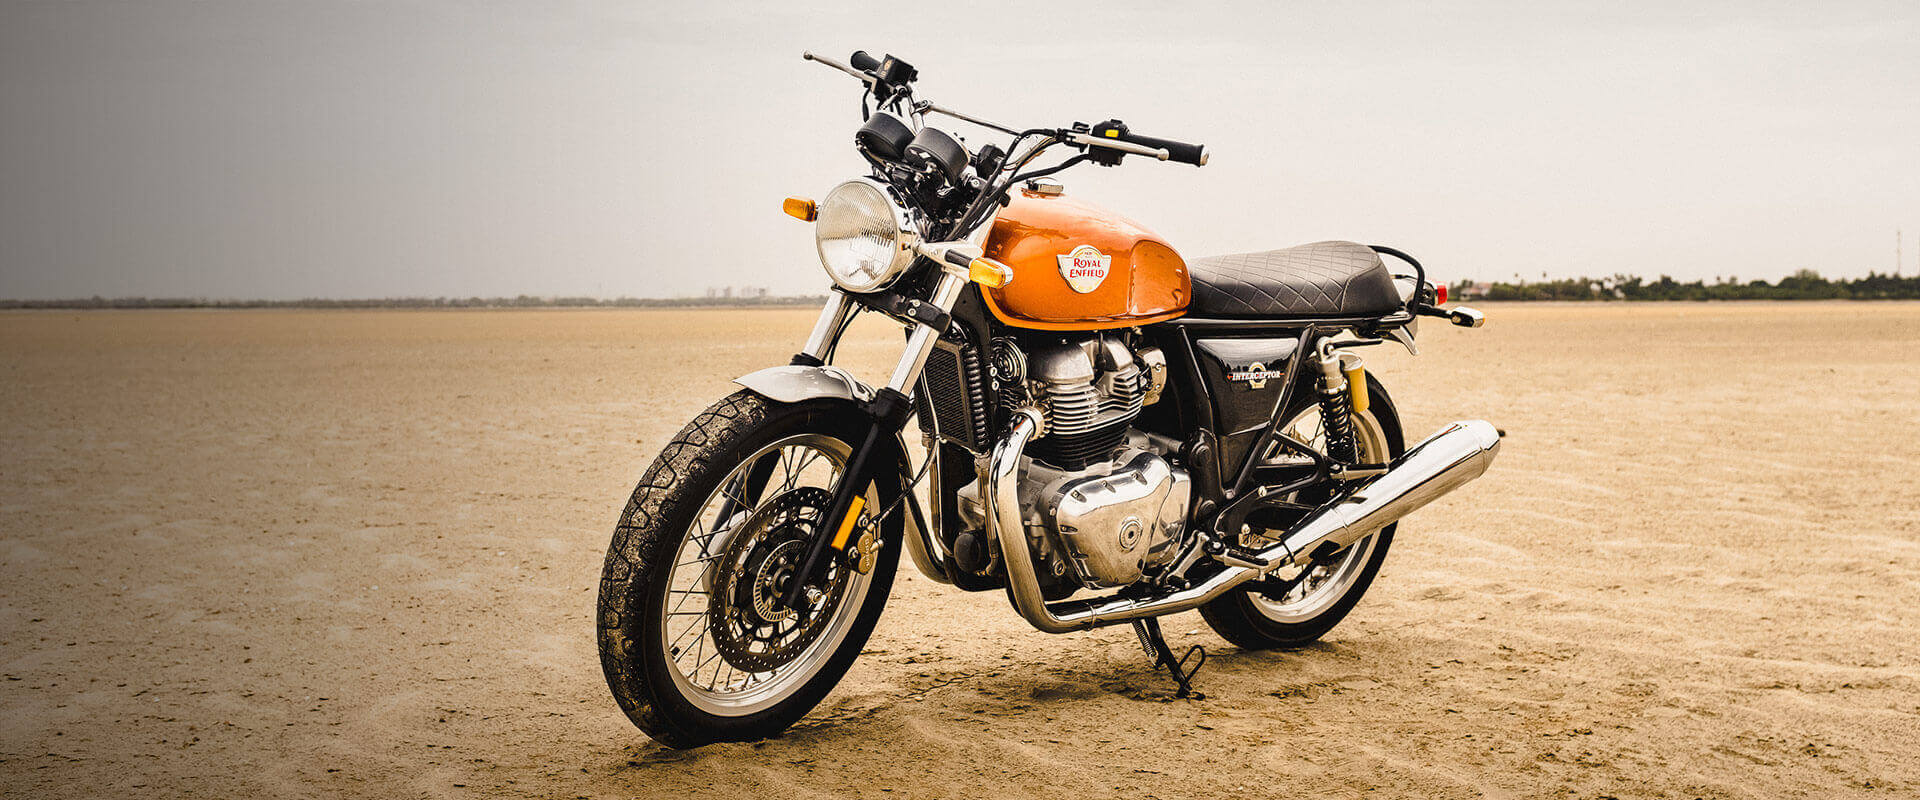 Royal Enfield Interceptor 650 What Else Can You Get For The Price